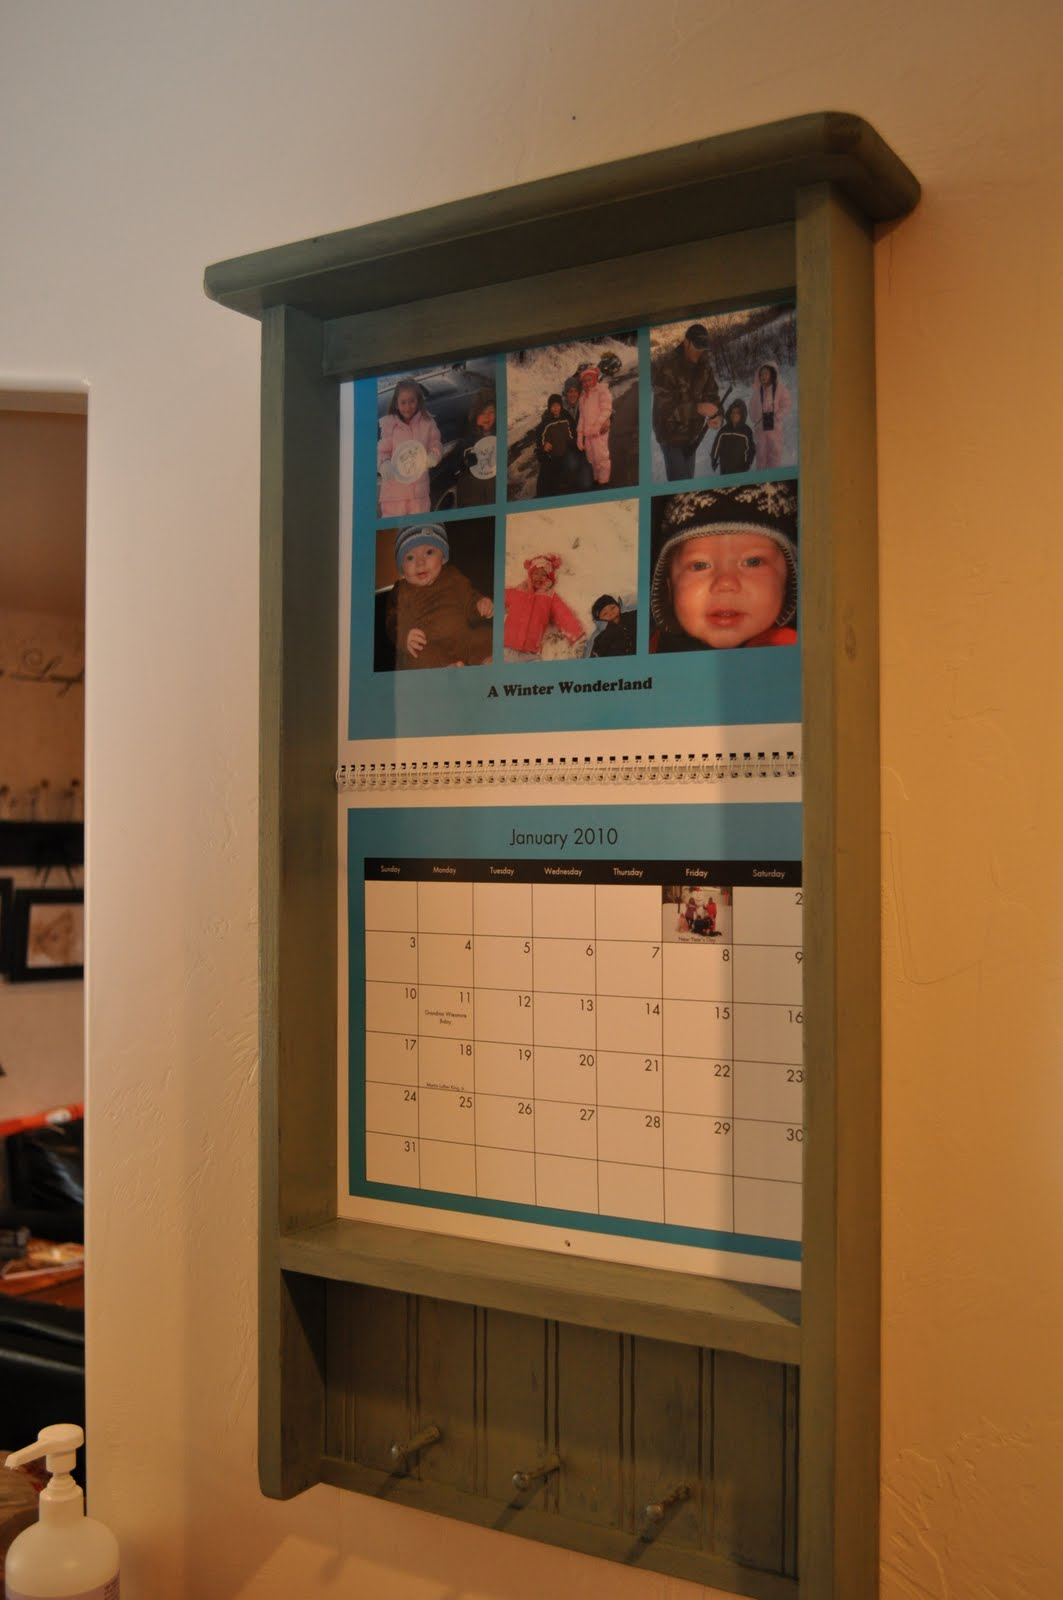 Shelves And Stuff: Shelves with Calendar Frames And Holders